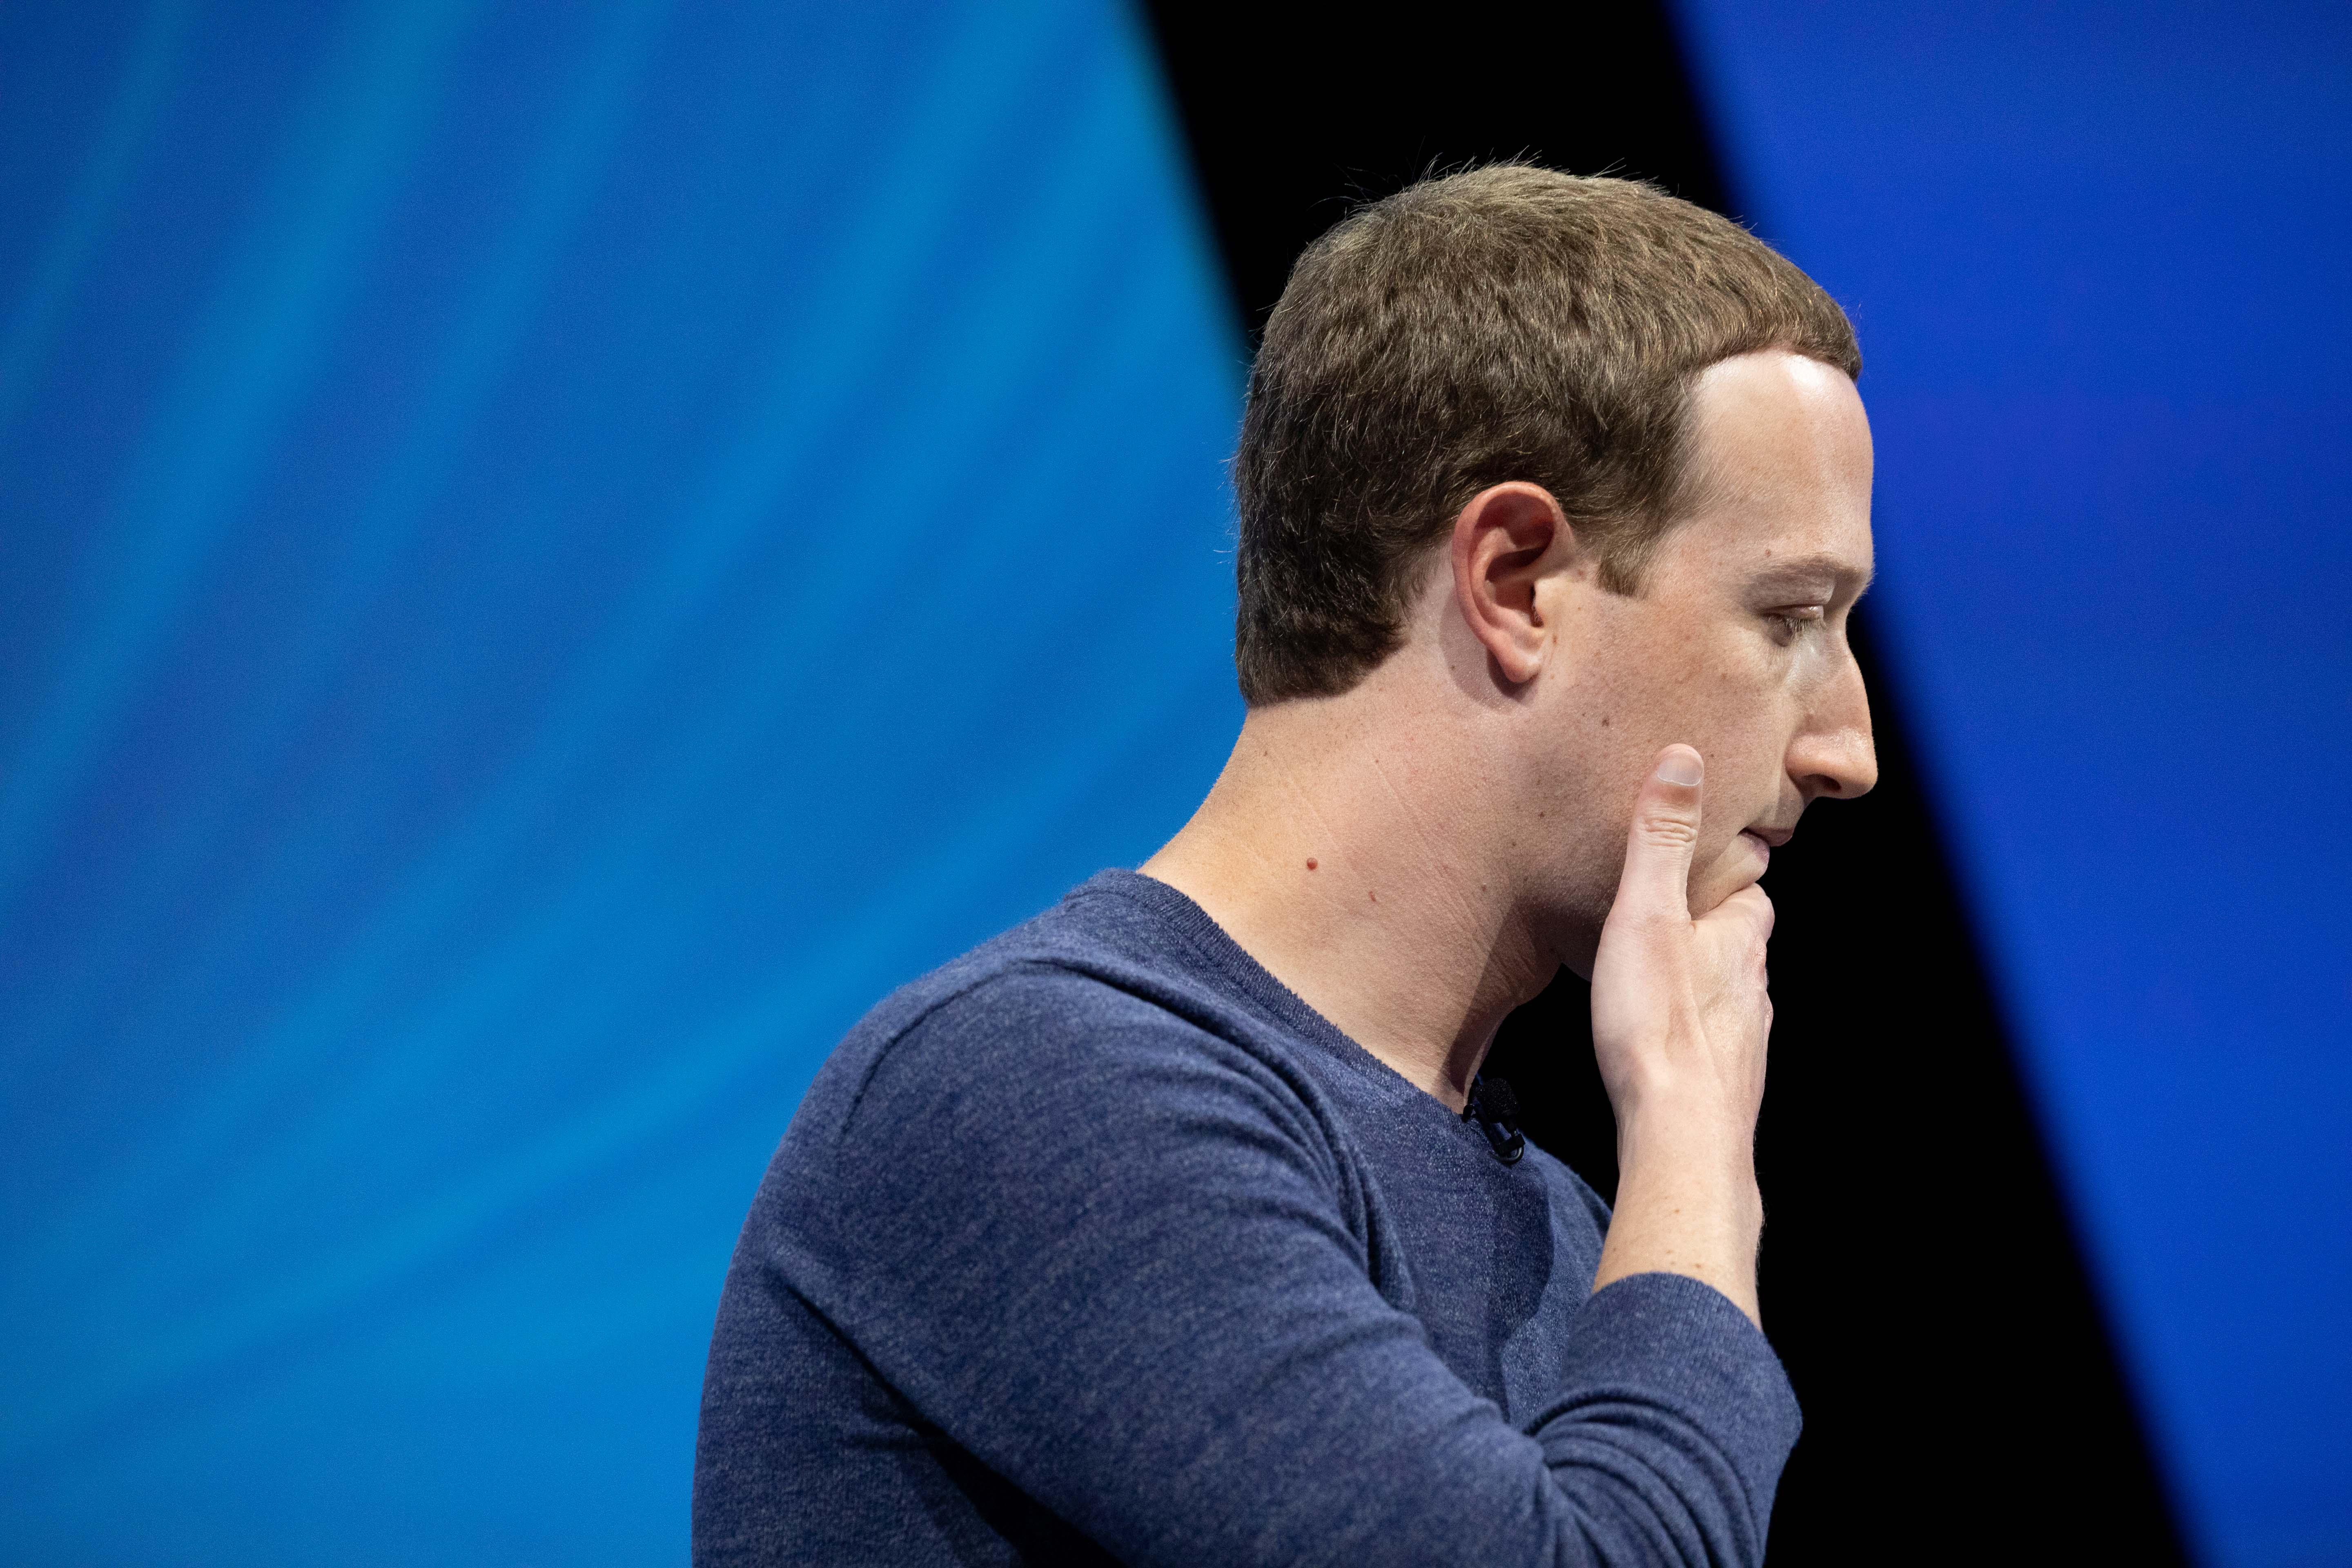 Facebook employee approval for CEO Mark Zuckerberg falls: Glassdoor